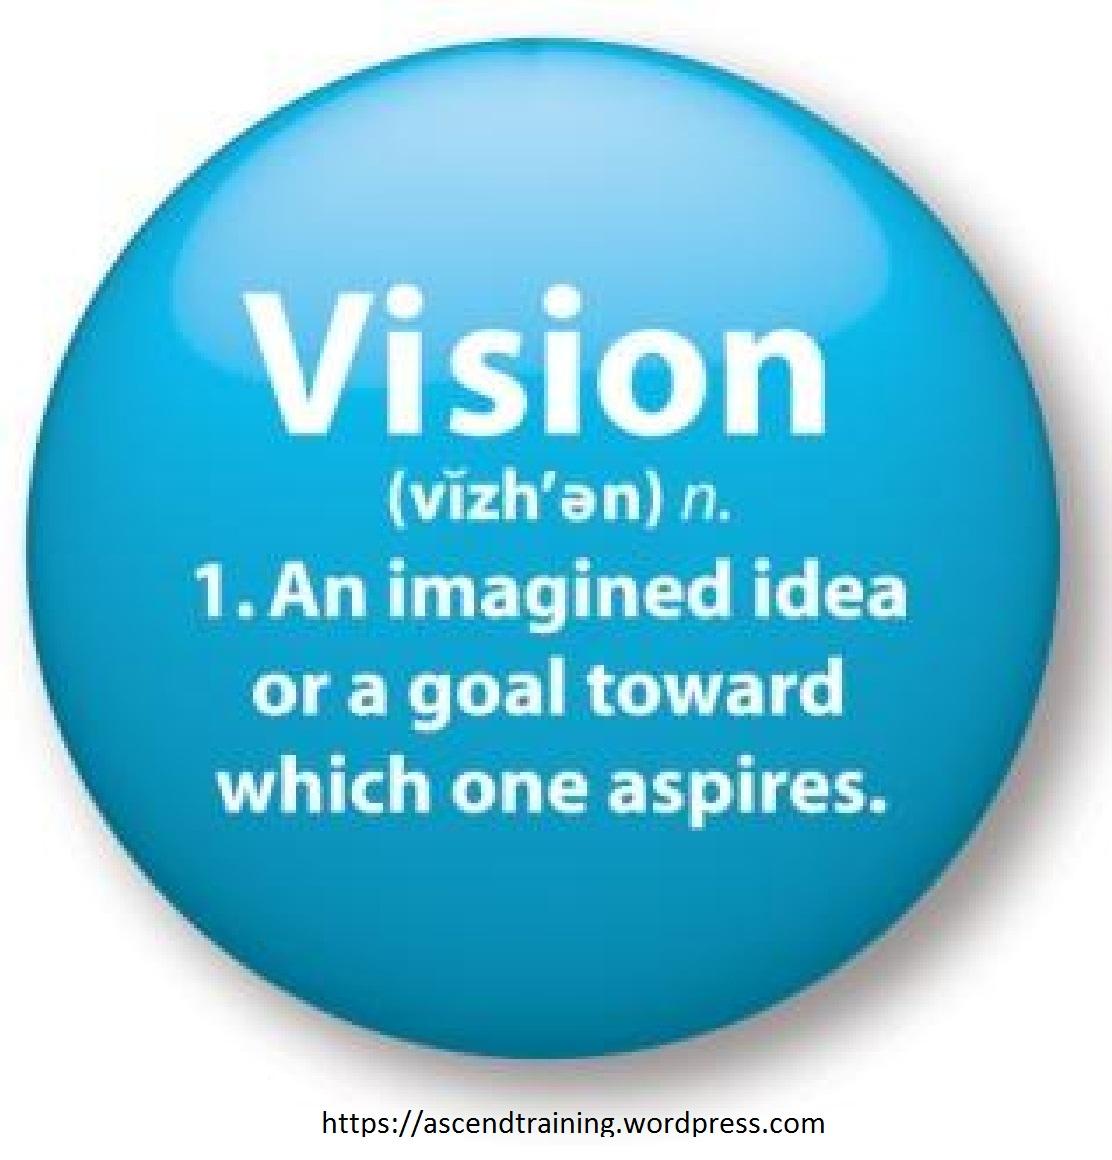 mission n vision of idea Vision, mission & approach we push the boundaries with every dollar and idea  to fuel real and lasting change  we act with empathy and respect we engage.